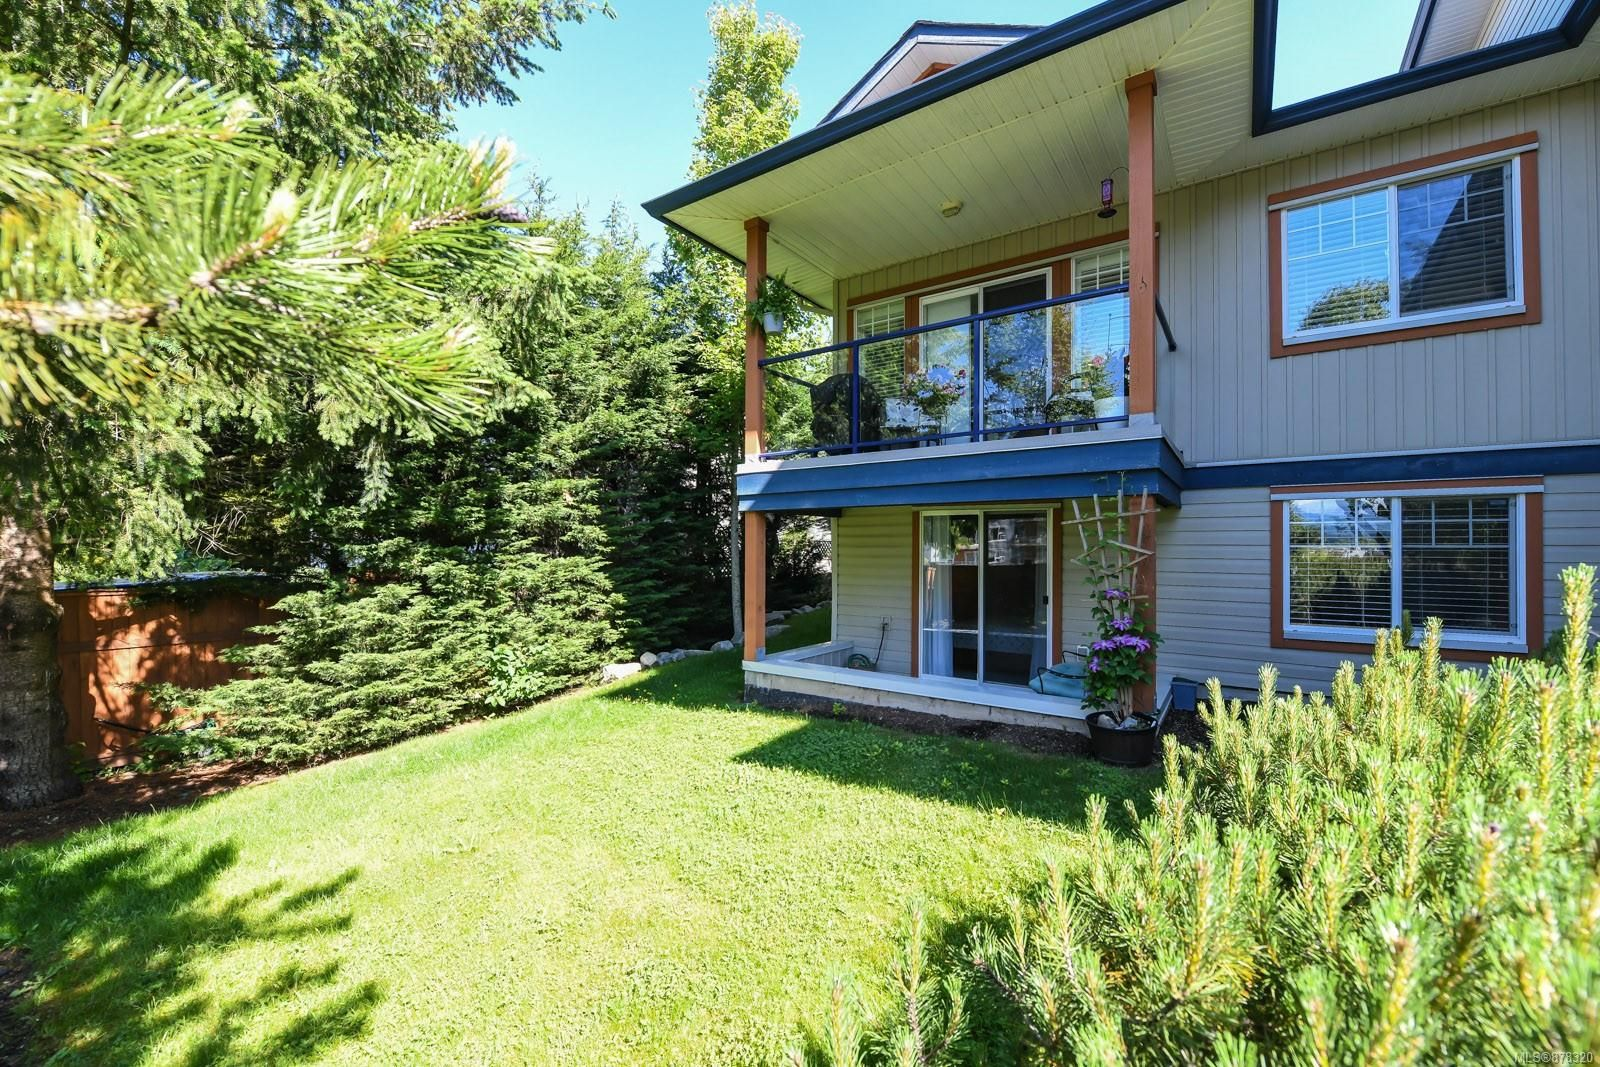 Main Photo: 213 930 Braidwood Rd in : CV Courtenay City Row/Townhouse for sale (Comox Valley)  : MLS®# 878320